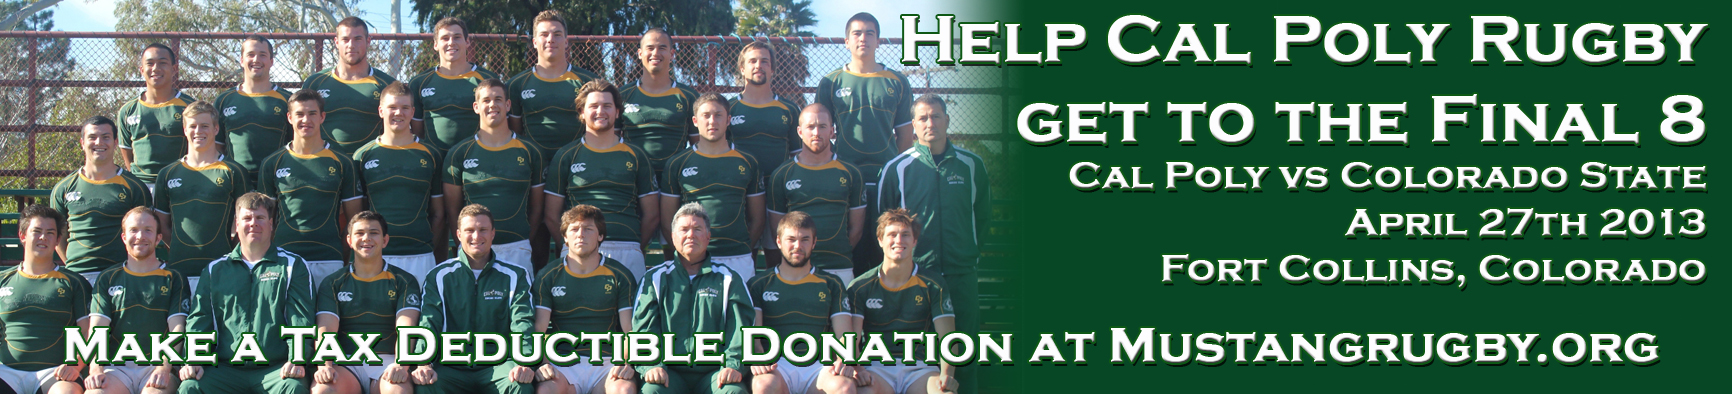 Donate at Mustangrugby.org